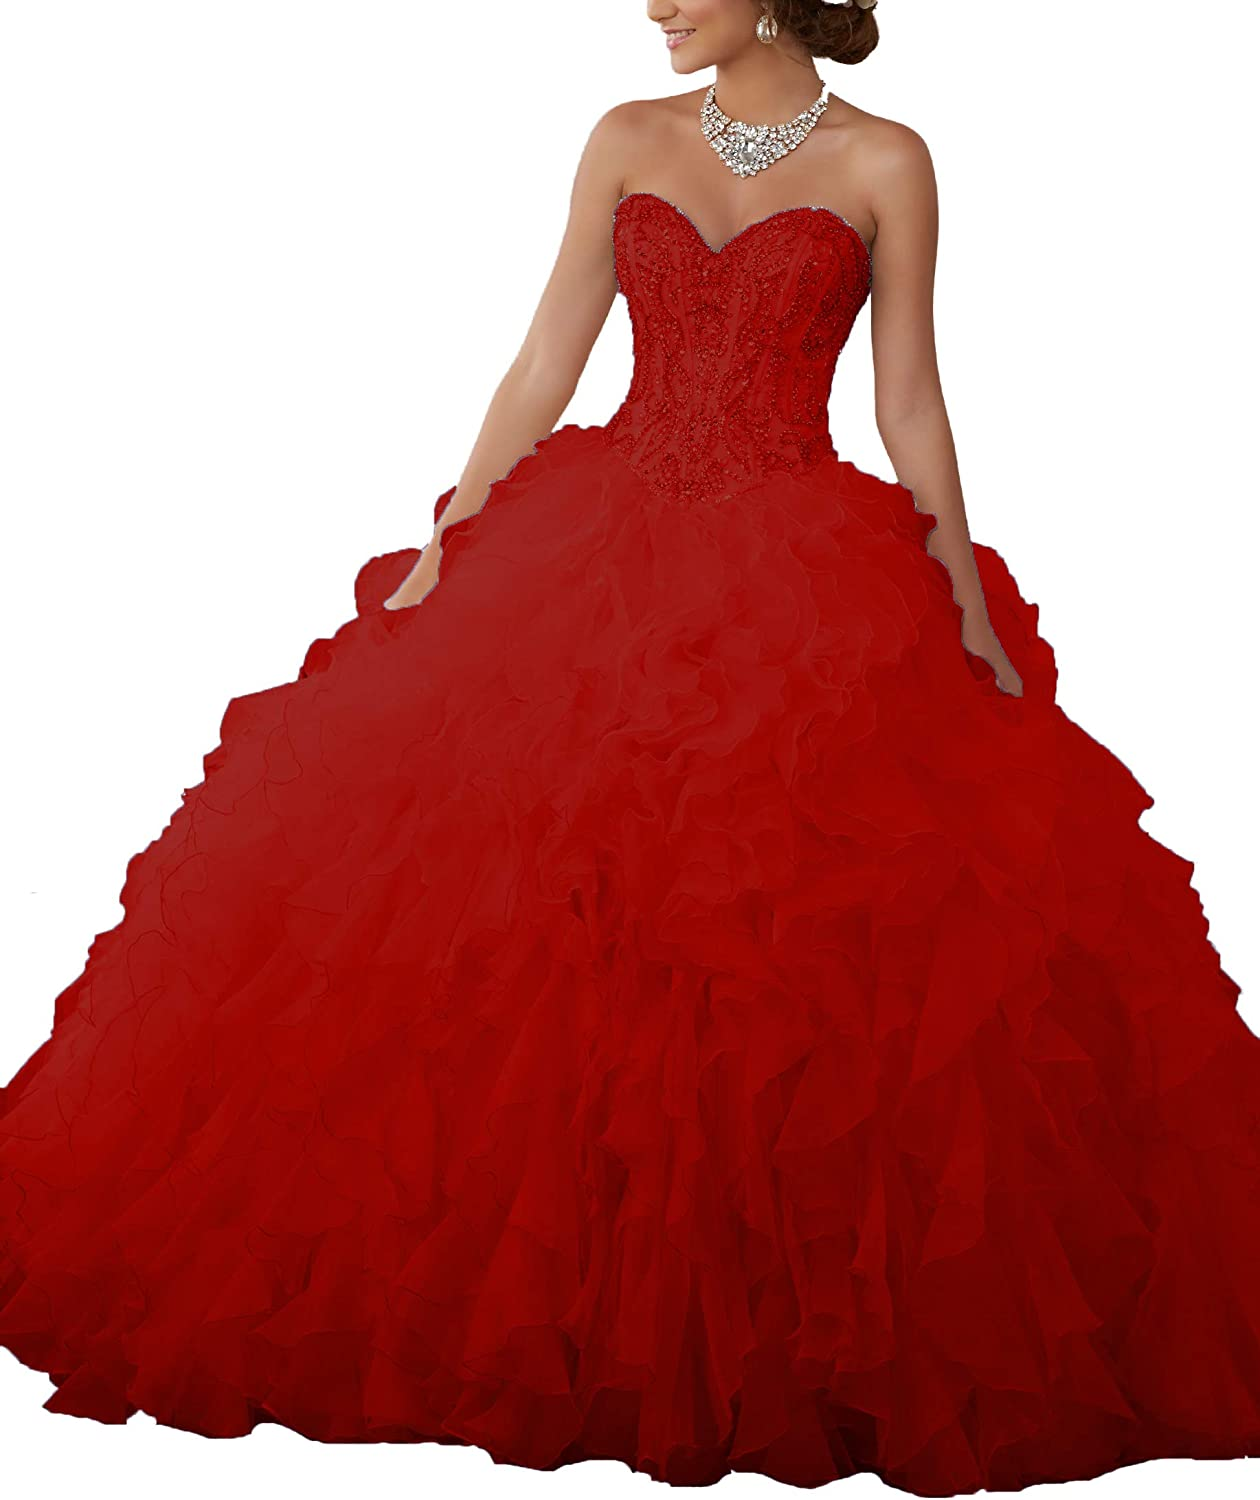 Aishanglina Women's Sweetheart Heavy Beaded Organza Ruffle Quinceanera Dresses Prom Ball Gowns Lace Up Back